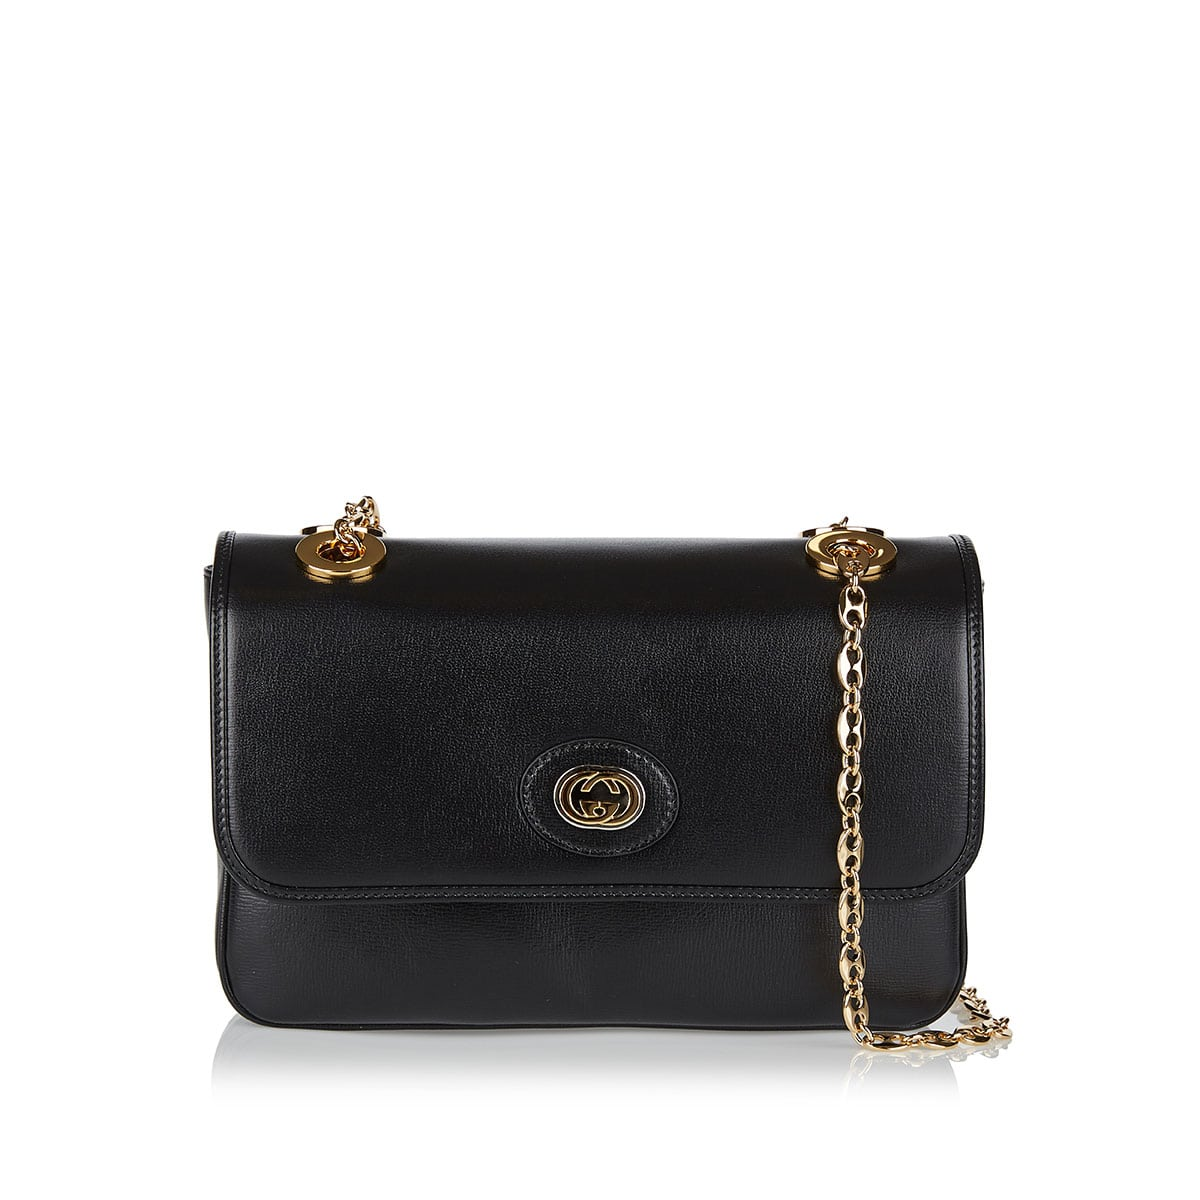 GG logo small chain bag